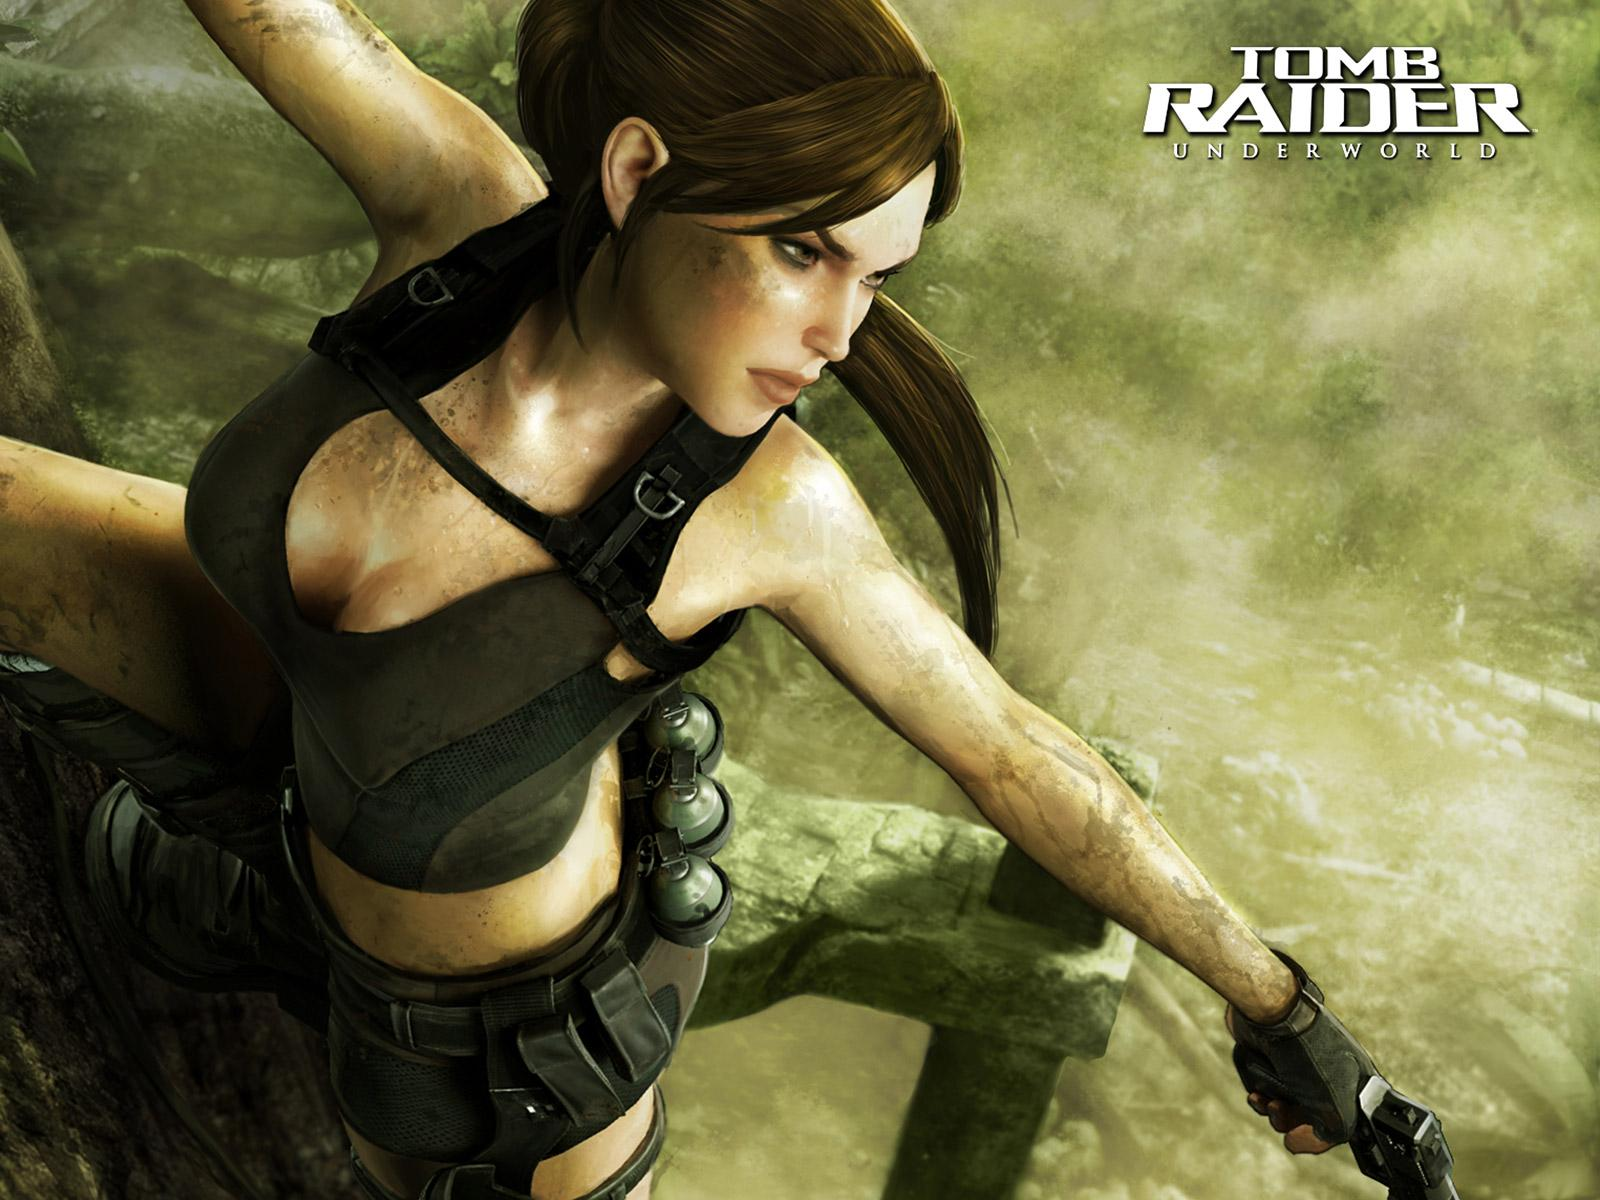 Lara Croft Tomb Raider Artwork Hd Wallpapers